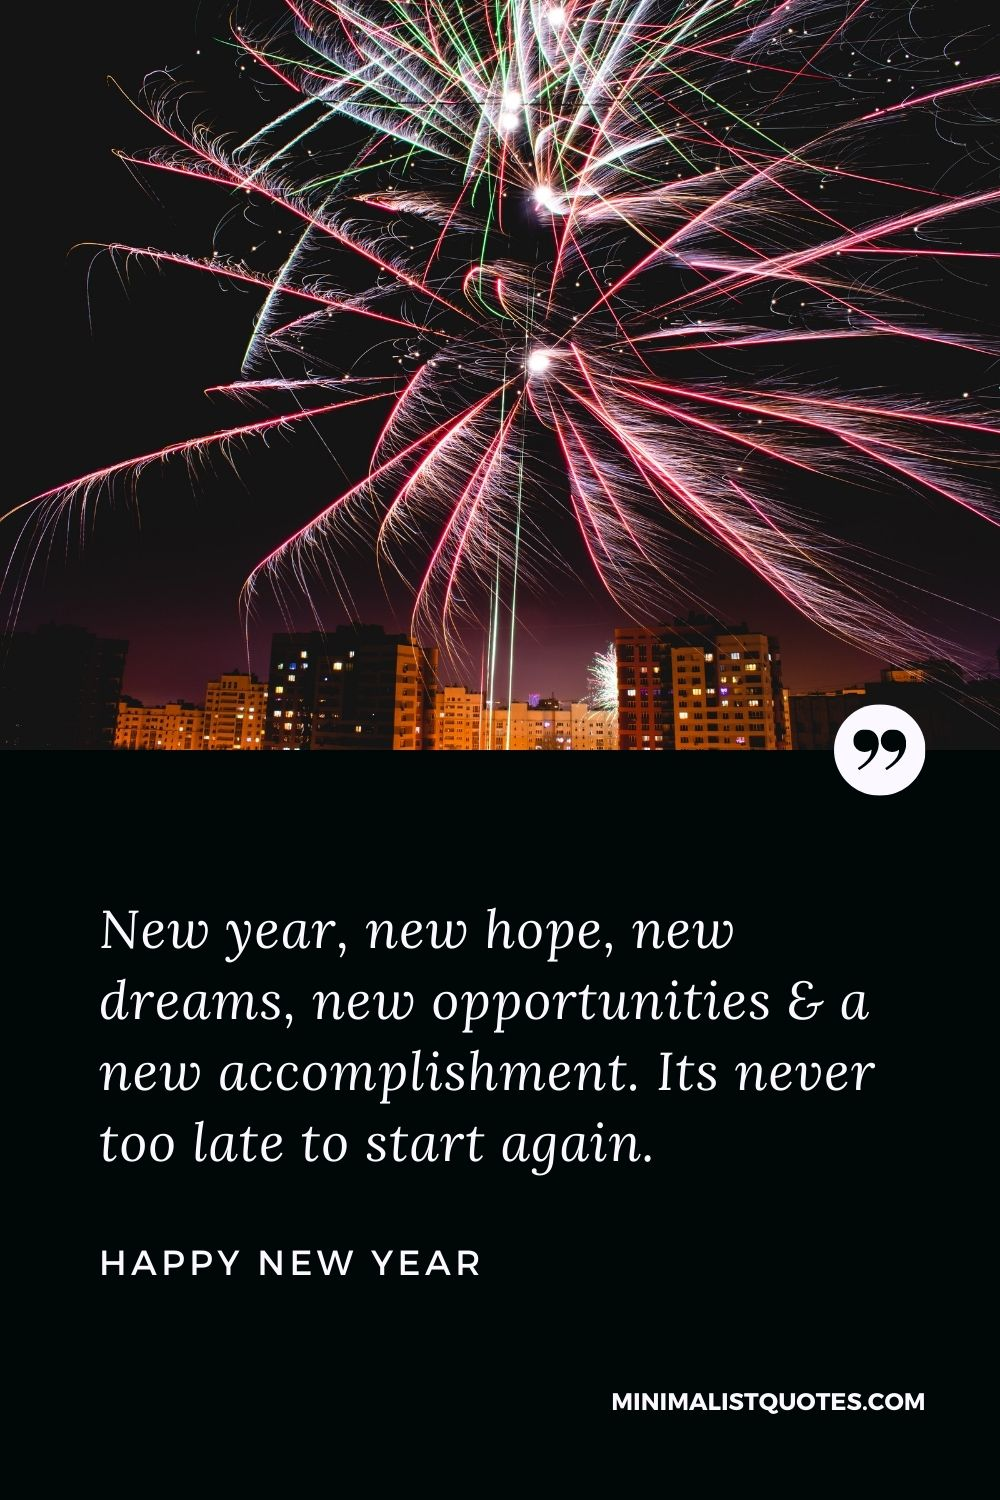 New Year Wish - New year, new hope, new dreams, new opportunities & a new accomplishment. Its never too late to start again.